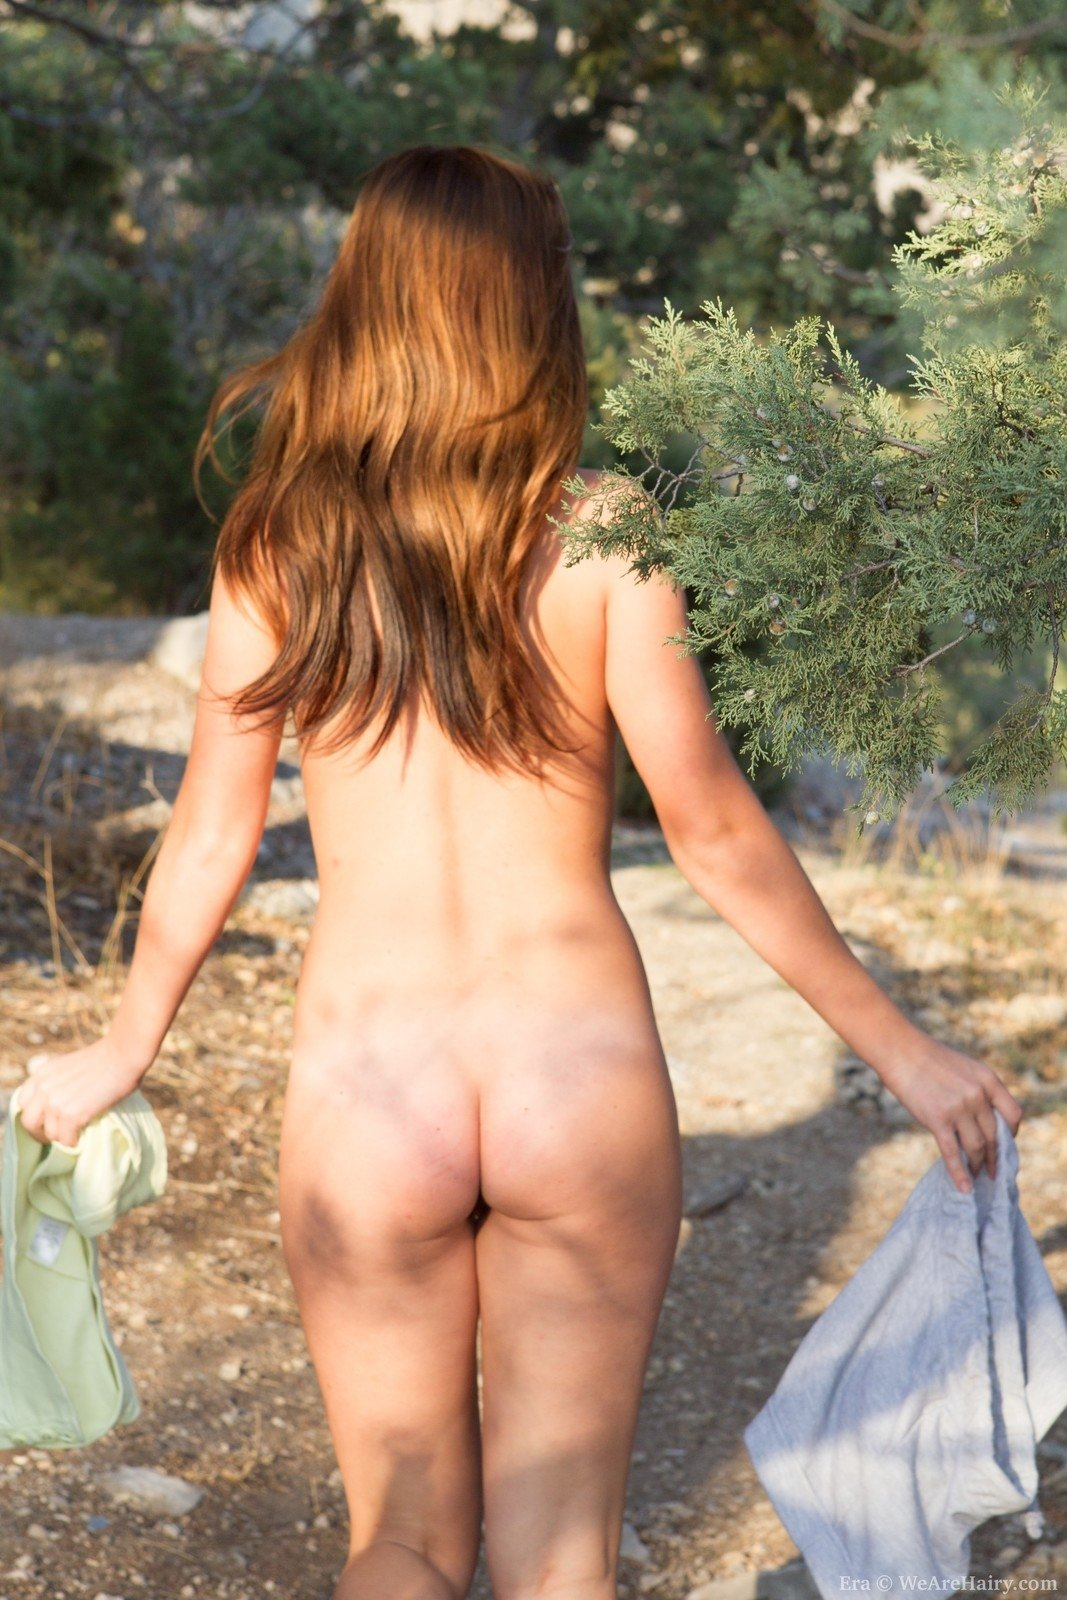 Young virgin nudist